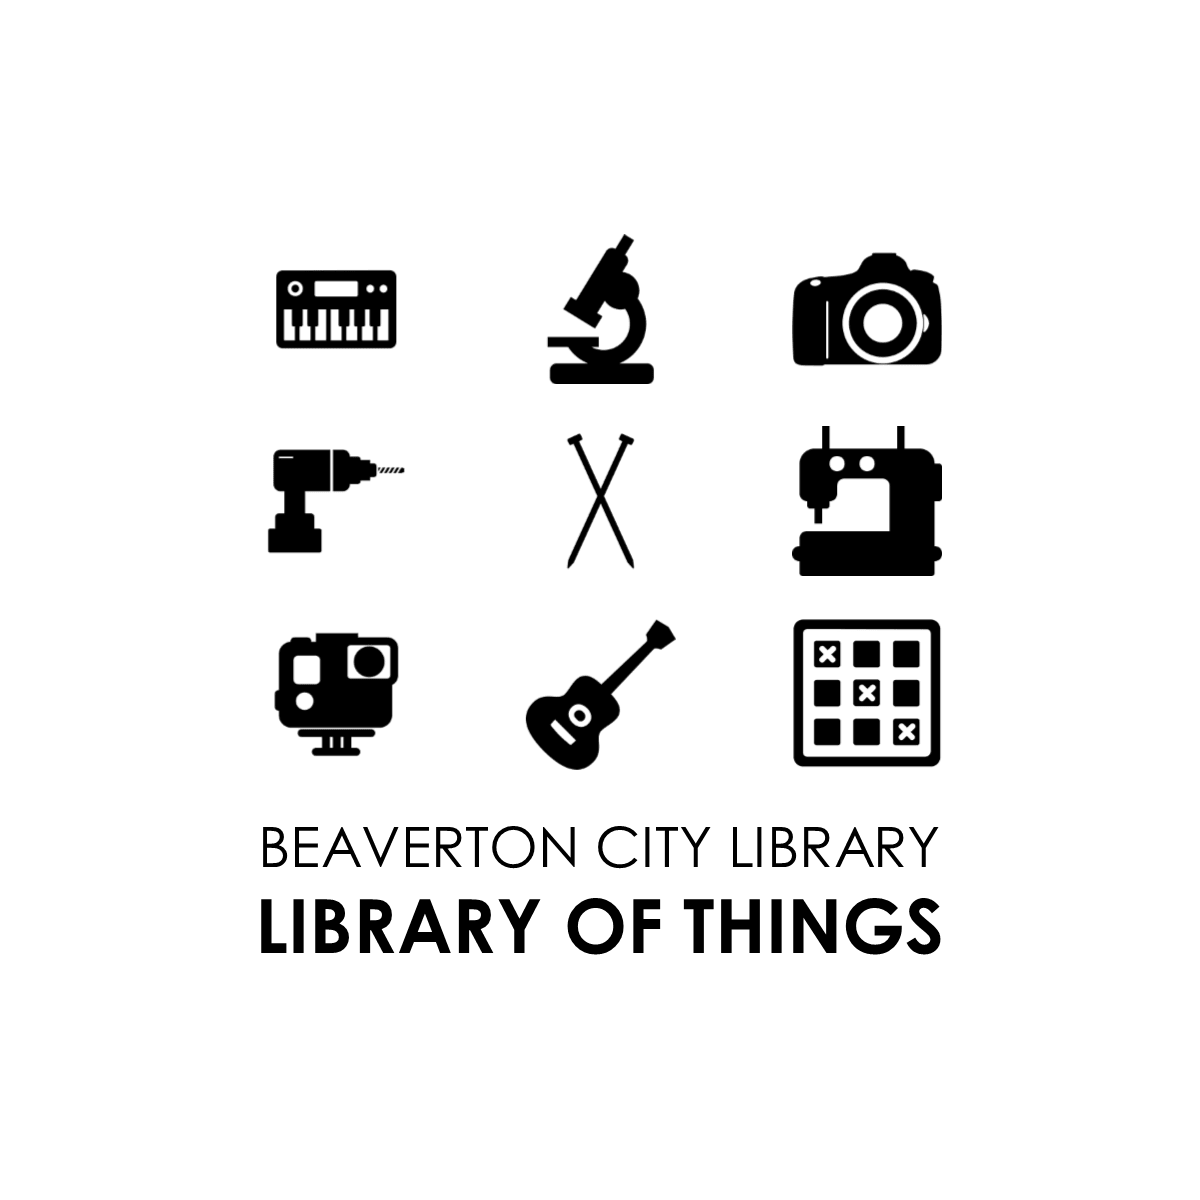 Library of Things graphic